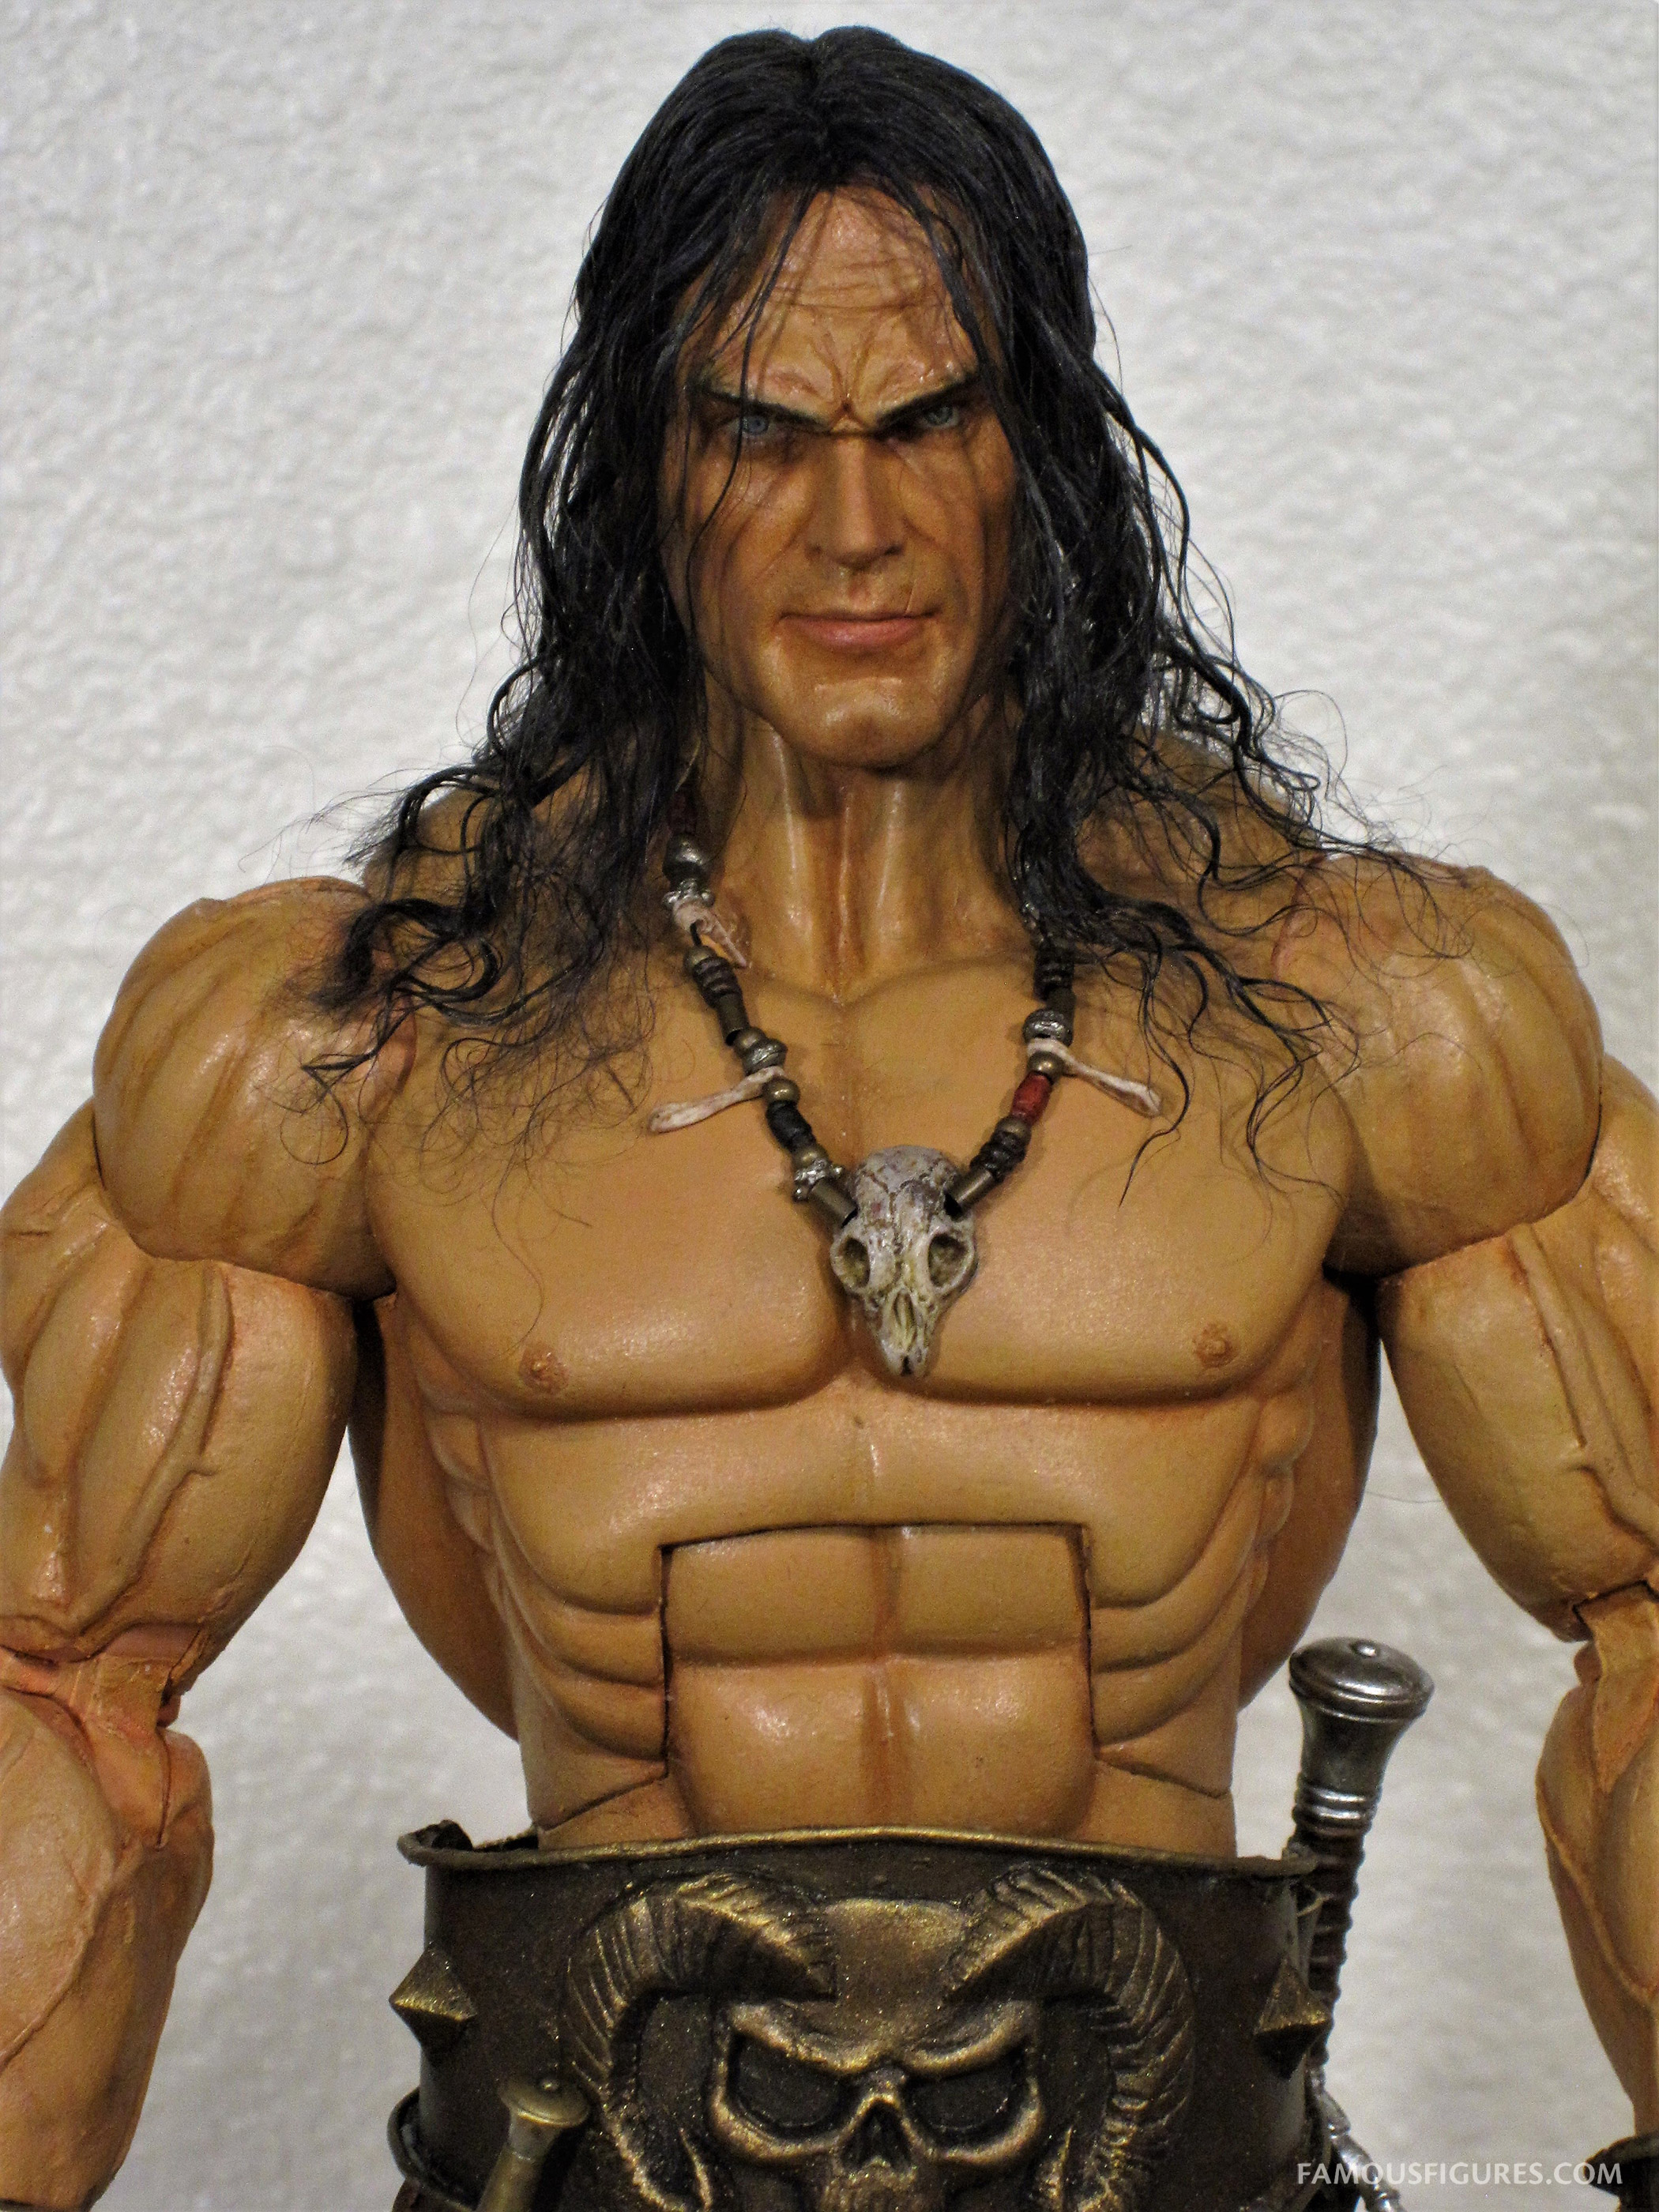 Conan the Barbarian 12-inch figure close up